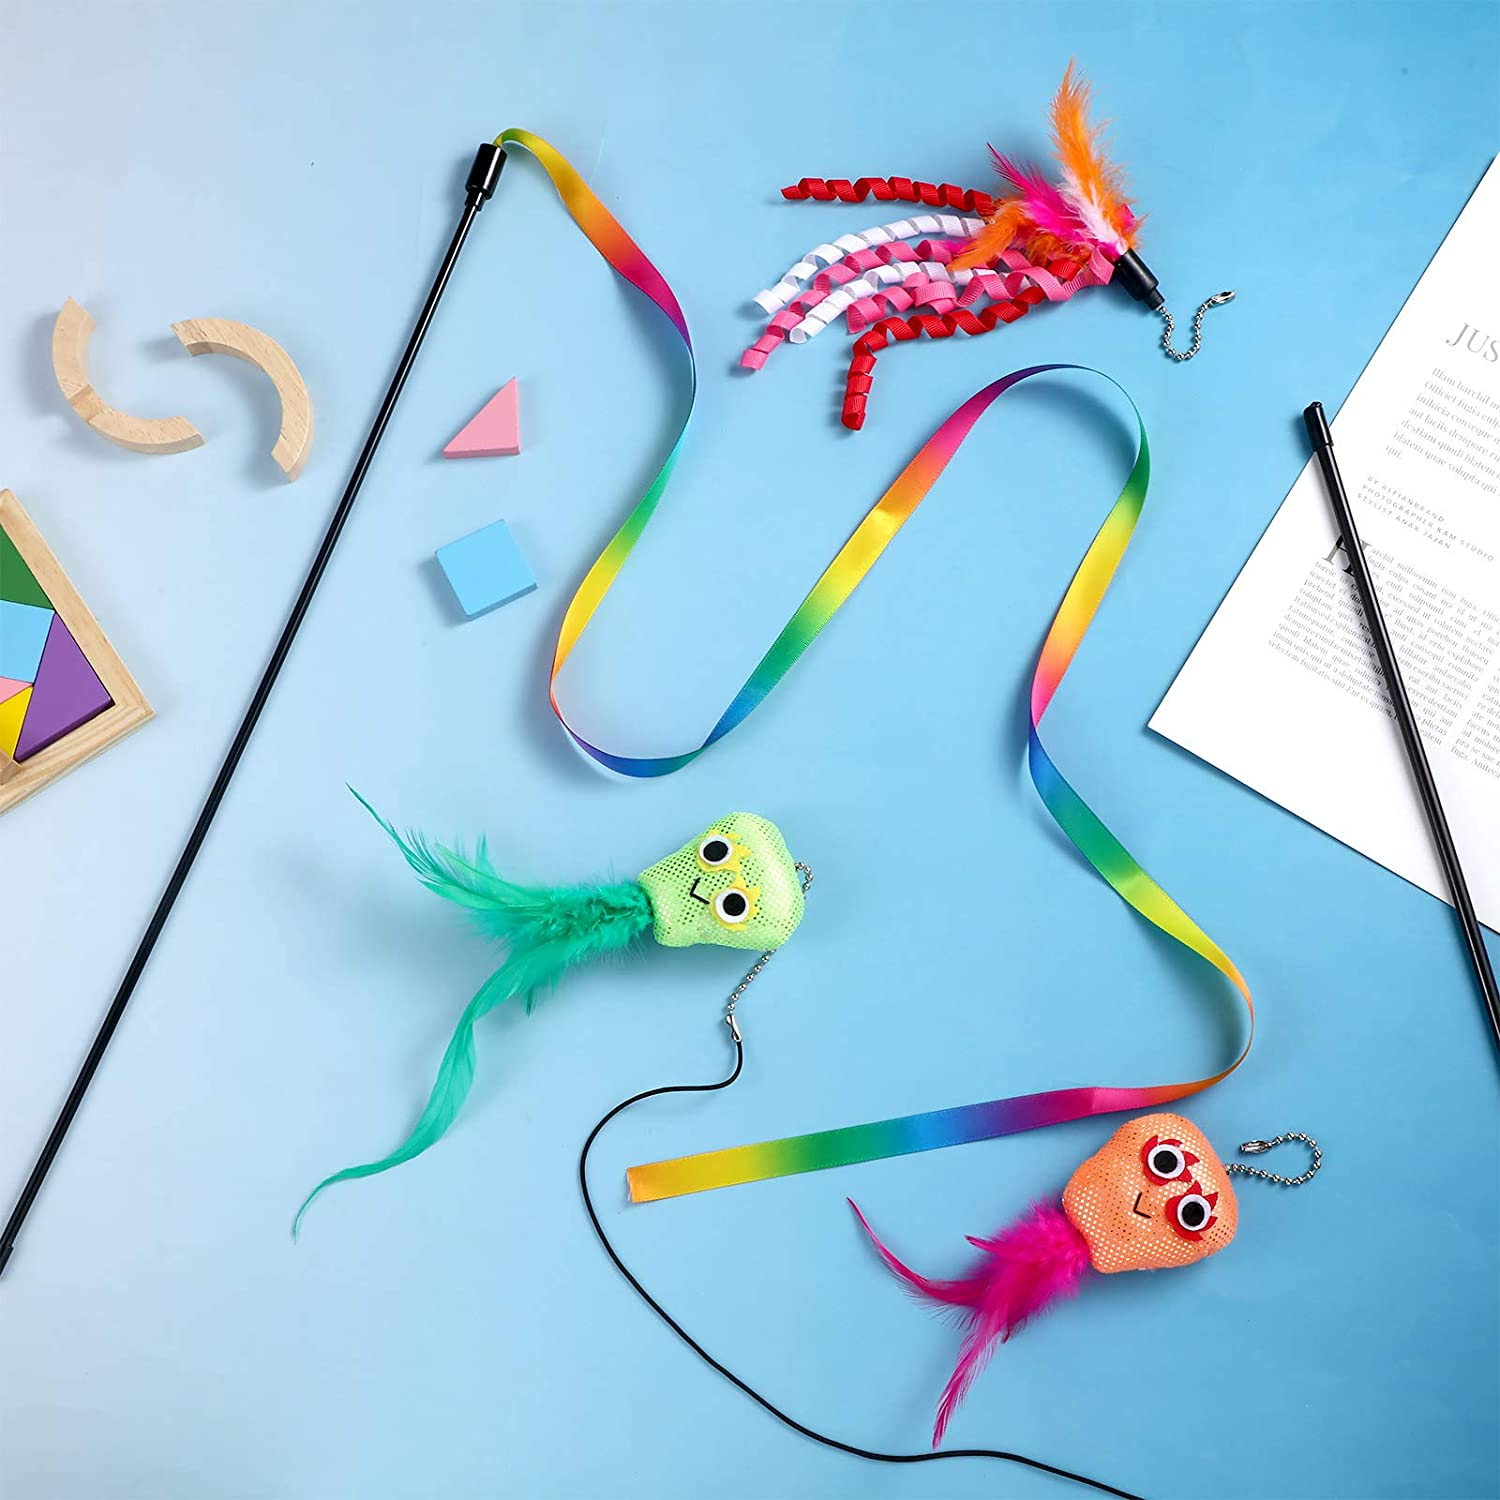 Skylety 6 Pieces Cat Wand Toys Interactive Feather Cat String Catcher Teaser Toys with Bell Attachment Replacements Rainbow Leopard Jungle Toys Colorful and Sounding for Cat Kitten Training Exerciser